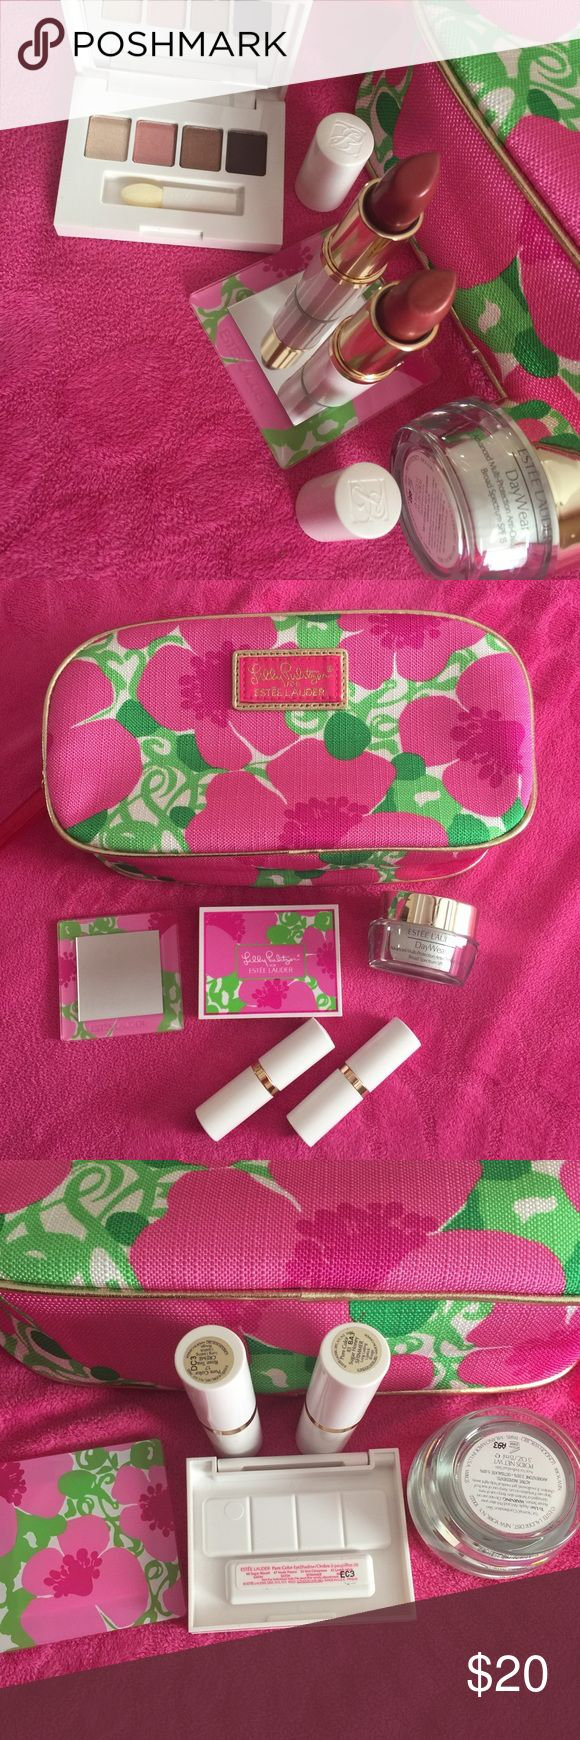 Lilly Pulitzer for Estée Lauder bundle Lilly Pulitzer for Estée Lauder makeup bag and makeup bundle. All items New! Bundle includes Lilly Pulitzer for a Estée a Lauder makeup bag, Estée Lauder day wear spf 15 .05oz, little mirror, Lilly Pulitzer for Estée Lauder eyeshadow, and two long lasting lipsticks in shade of 17 Rose Tea Cream and 83 Sugar Homer Shimmer. Lilly Pulitzer Makeup Lipstick